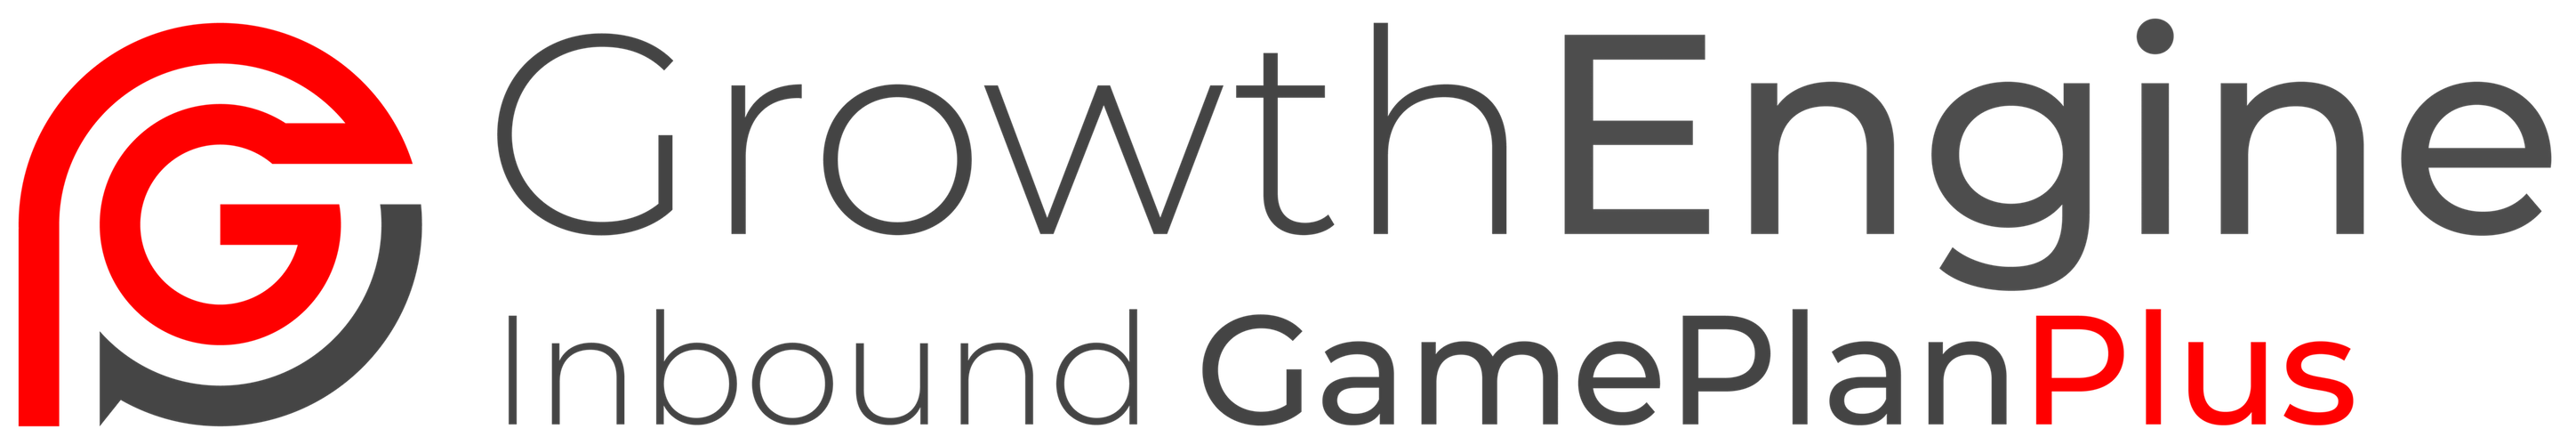 GrowthEngine - Inbound GamePlan Plus